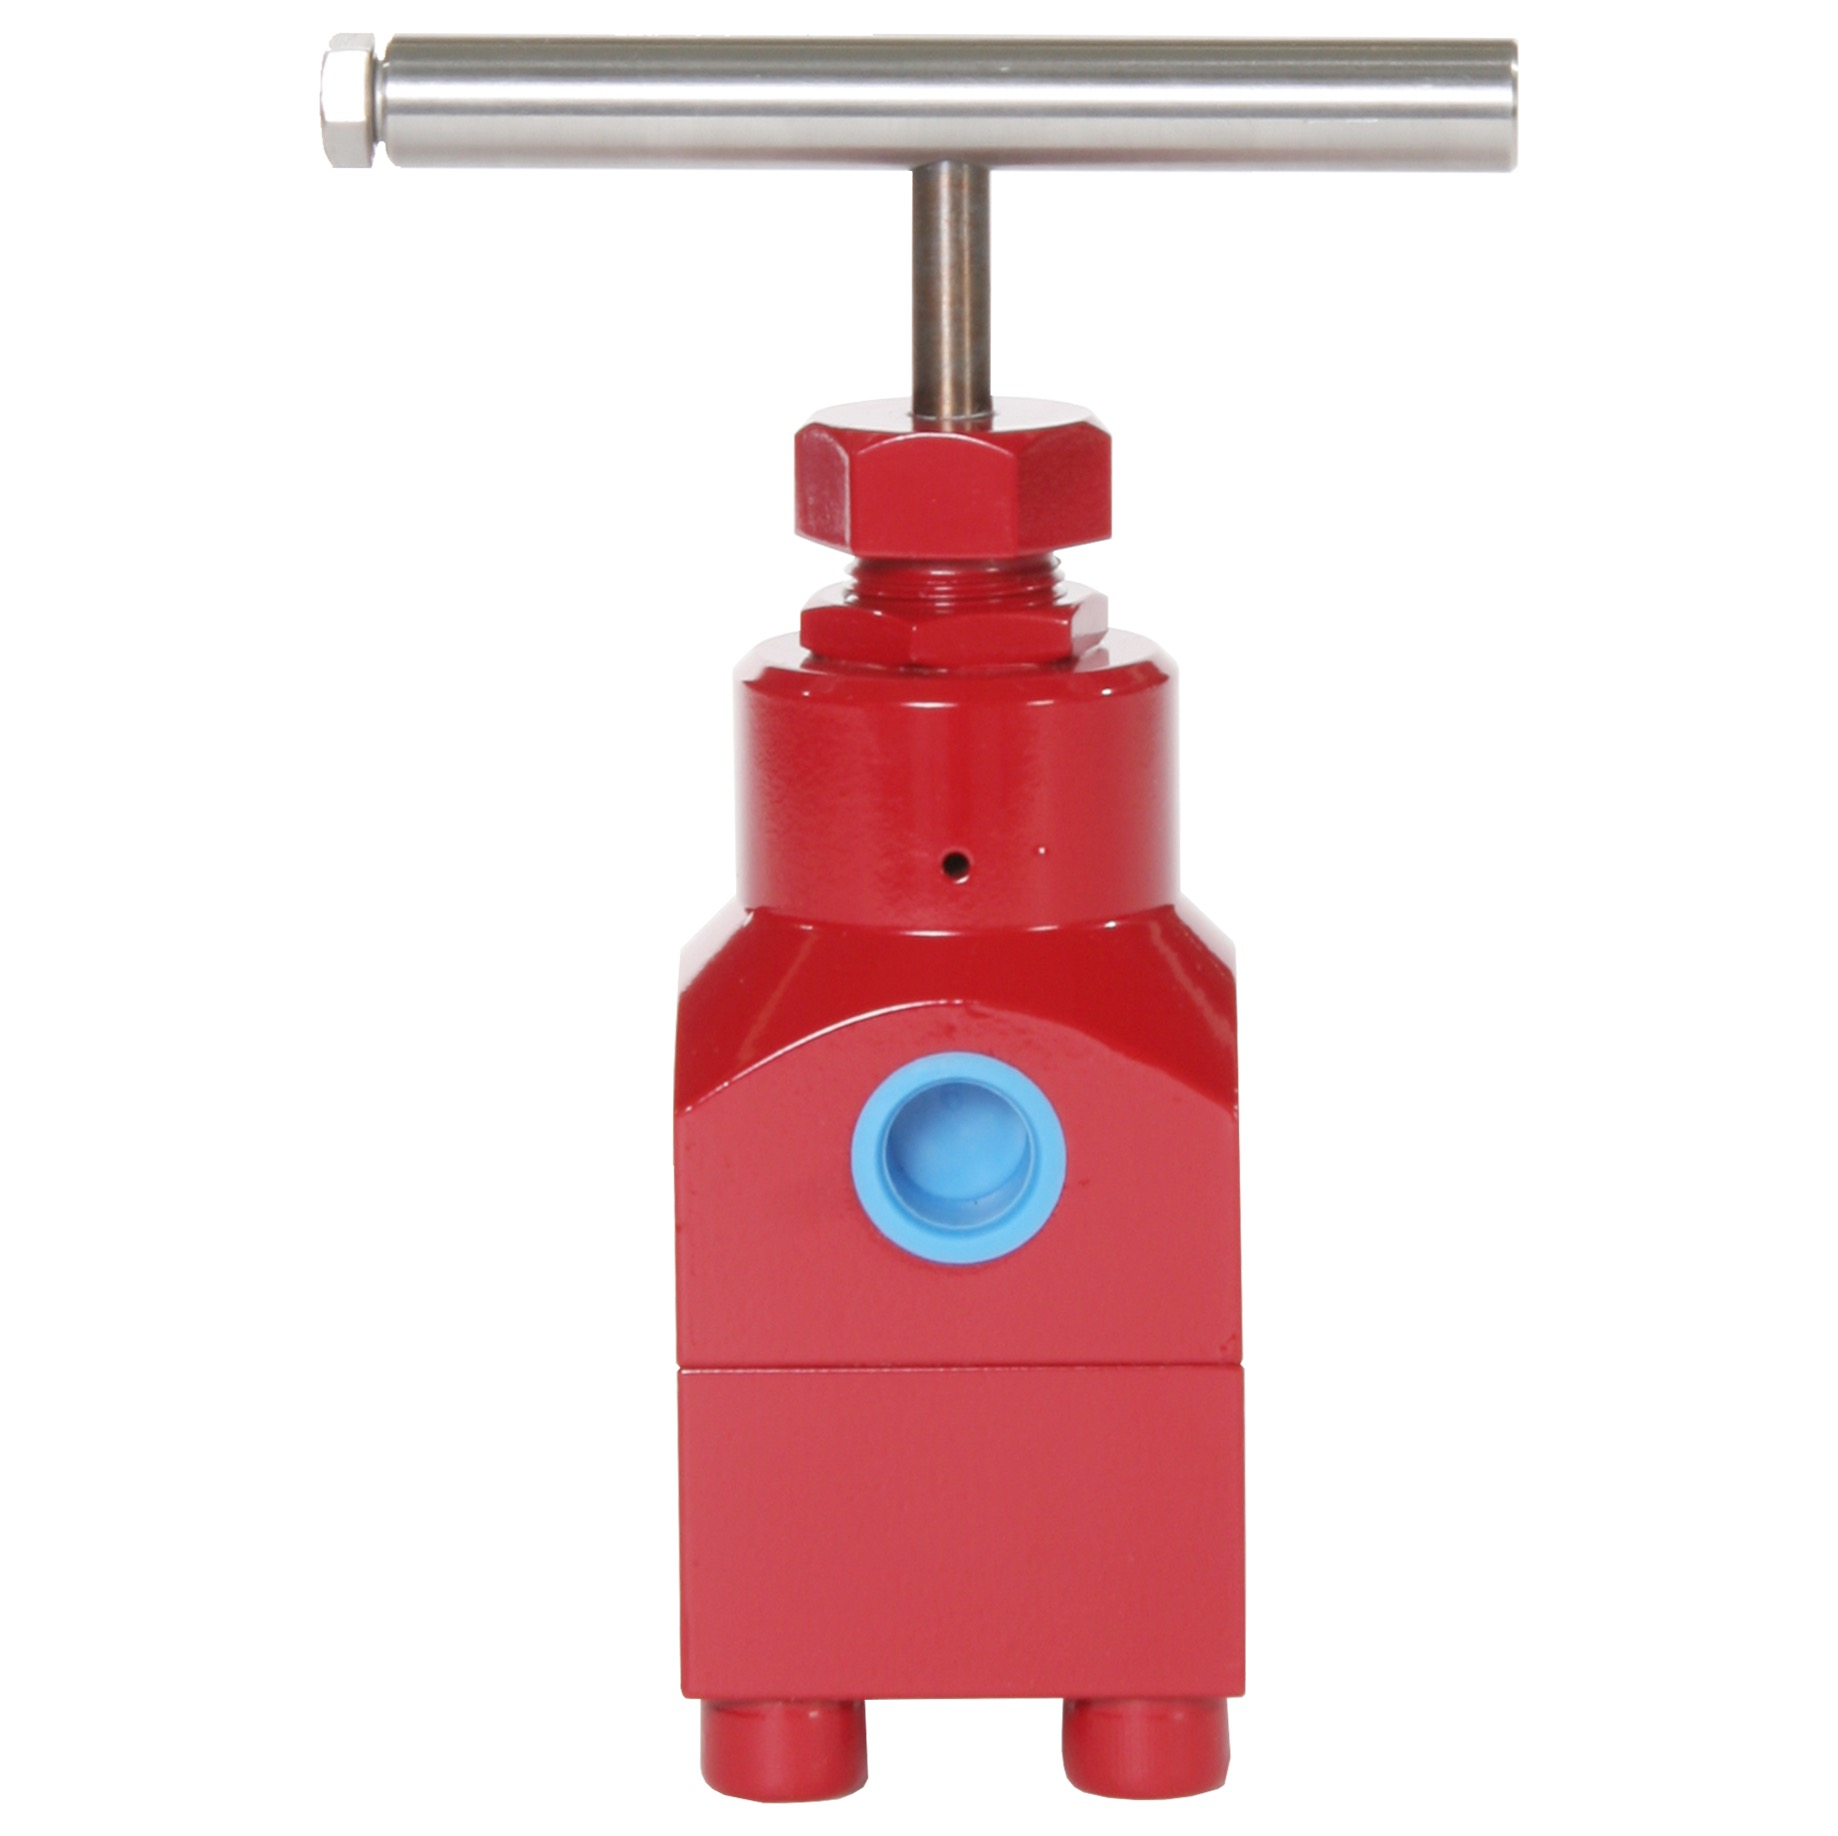 NV-20B Series Block Valve